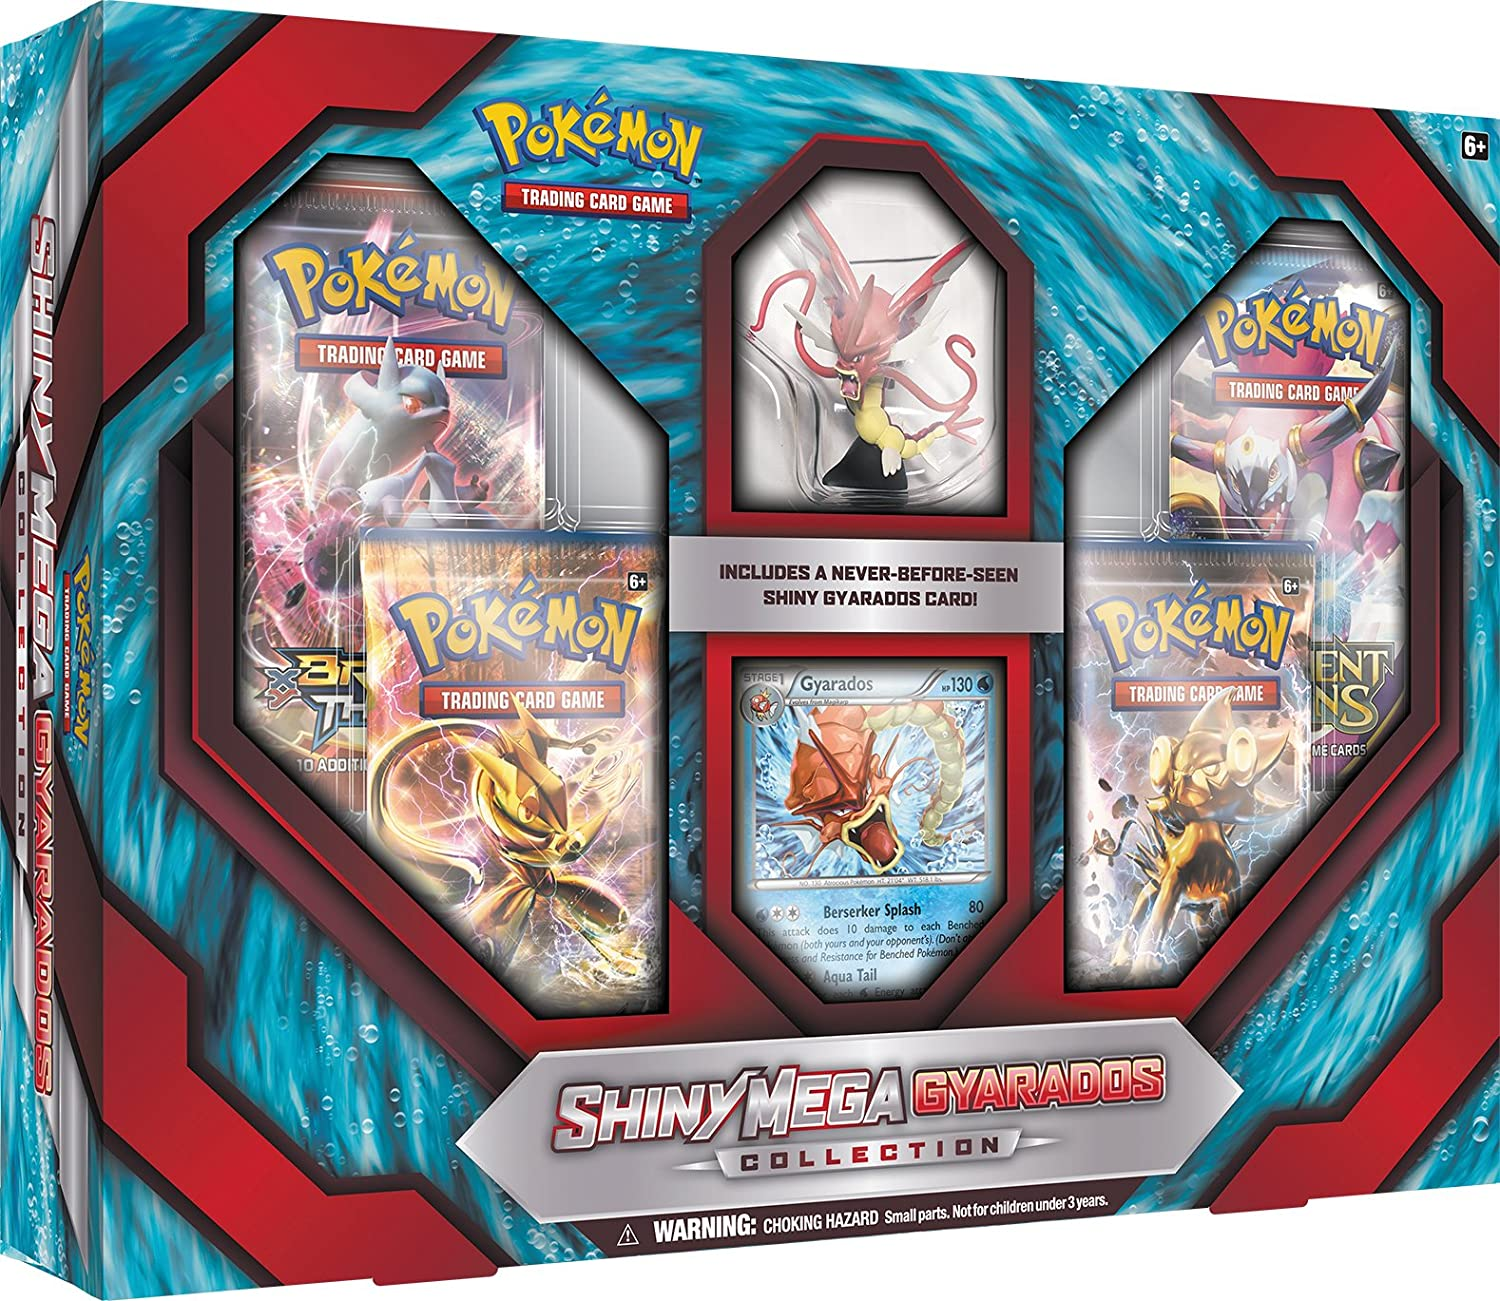 Pokemon - Shiny Mega Gyrados Collection Box | SKYFOX GAMES